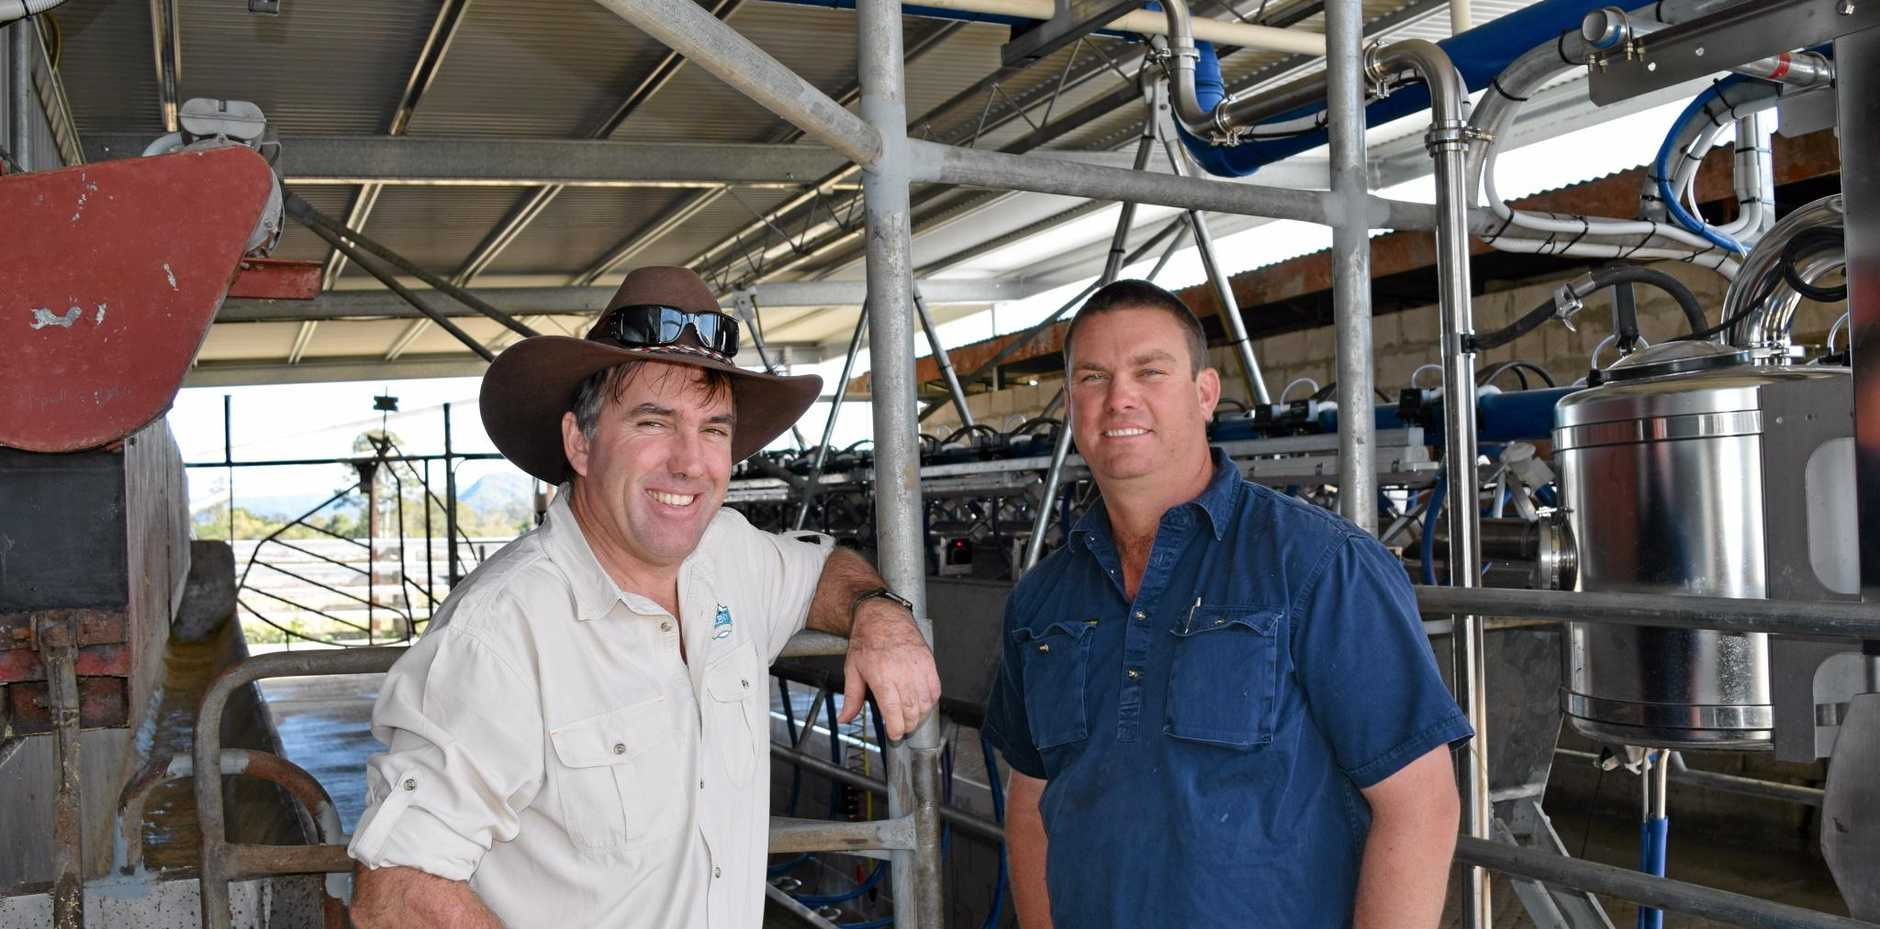 Maleny Dairies' Ross Hopper (left) and local farmer Jason Rozynski have partnered up to boost the local dairy industry